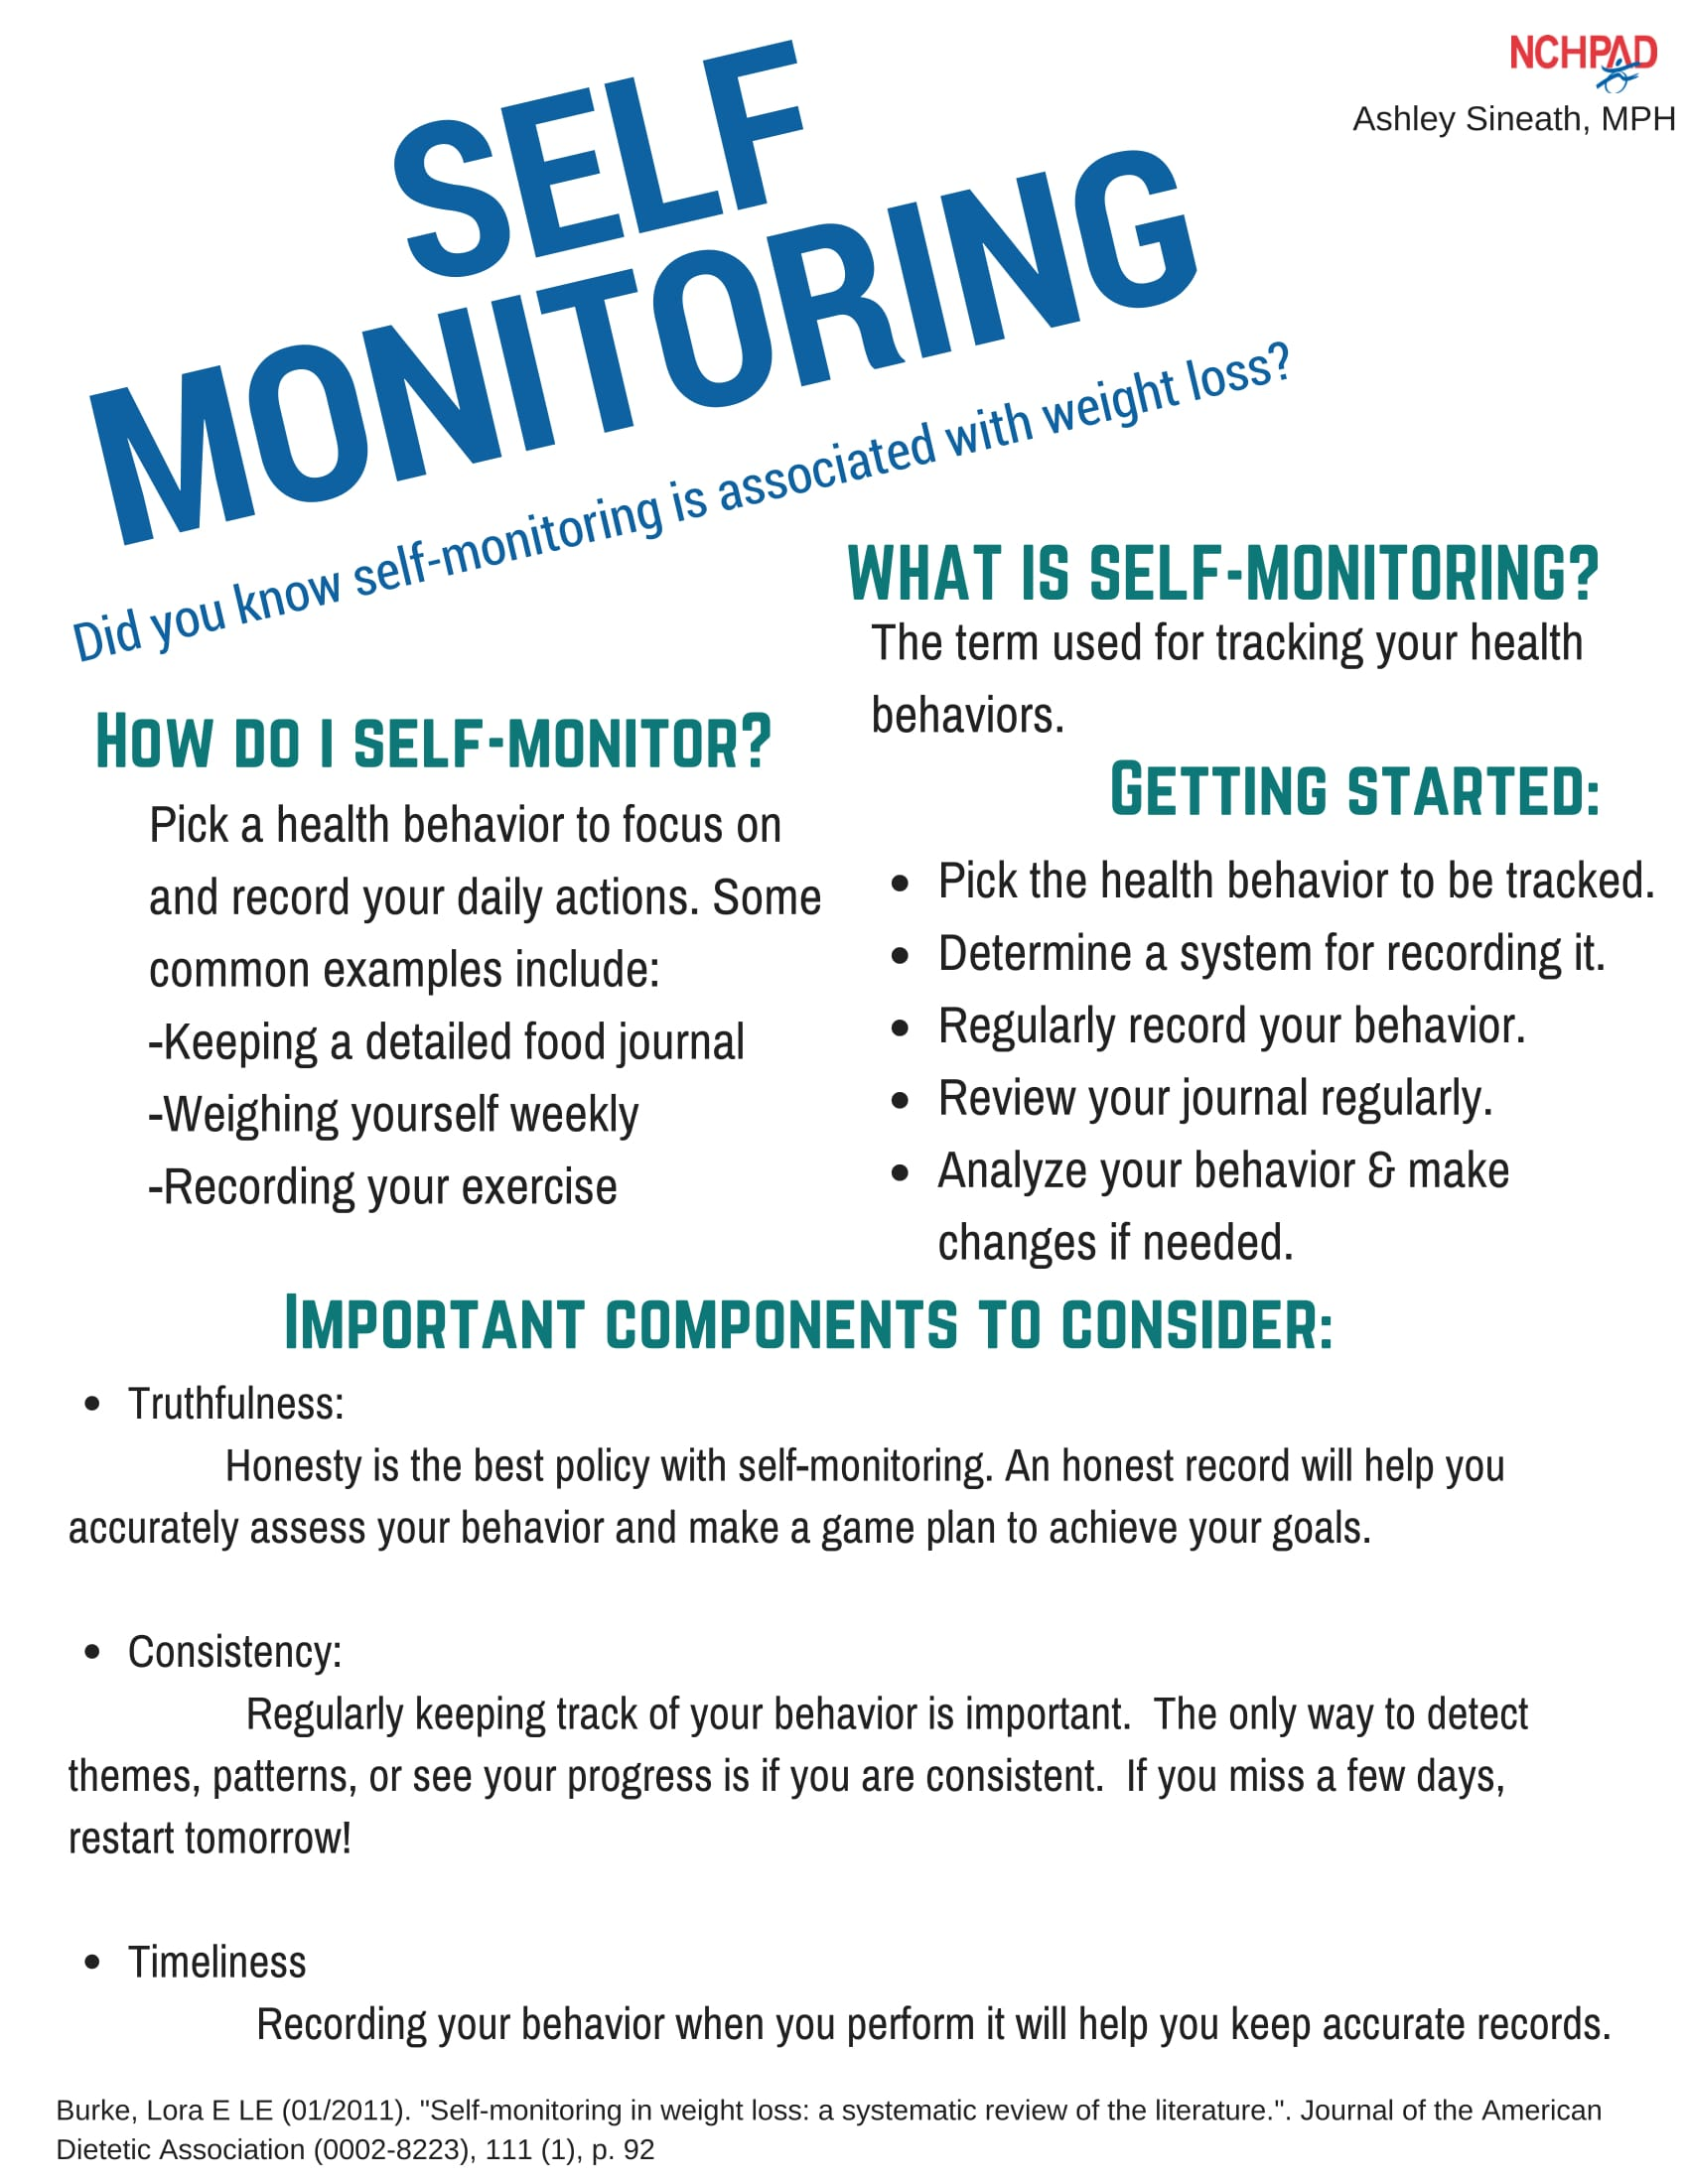 self monitoring nchpad building healthy inclusive communities